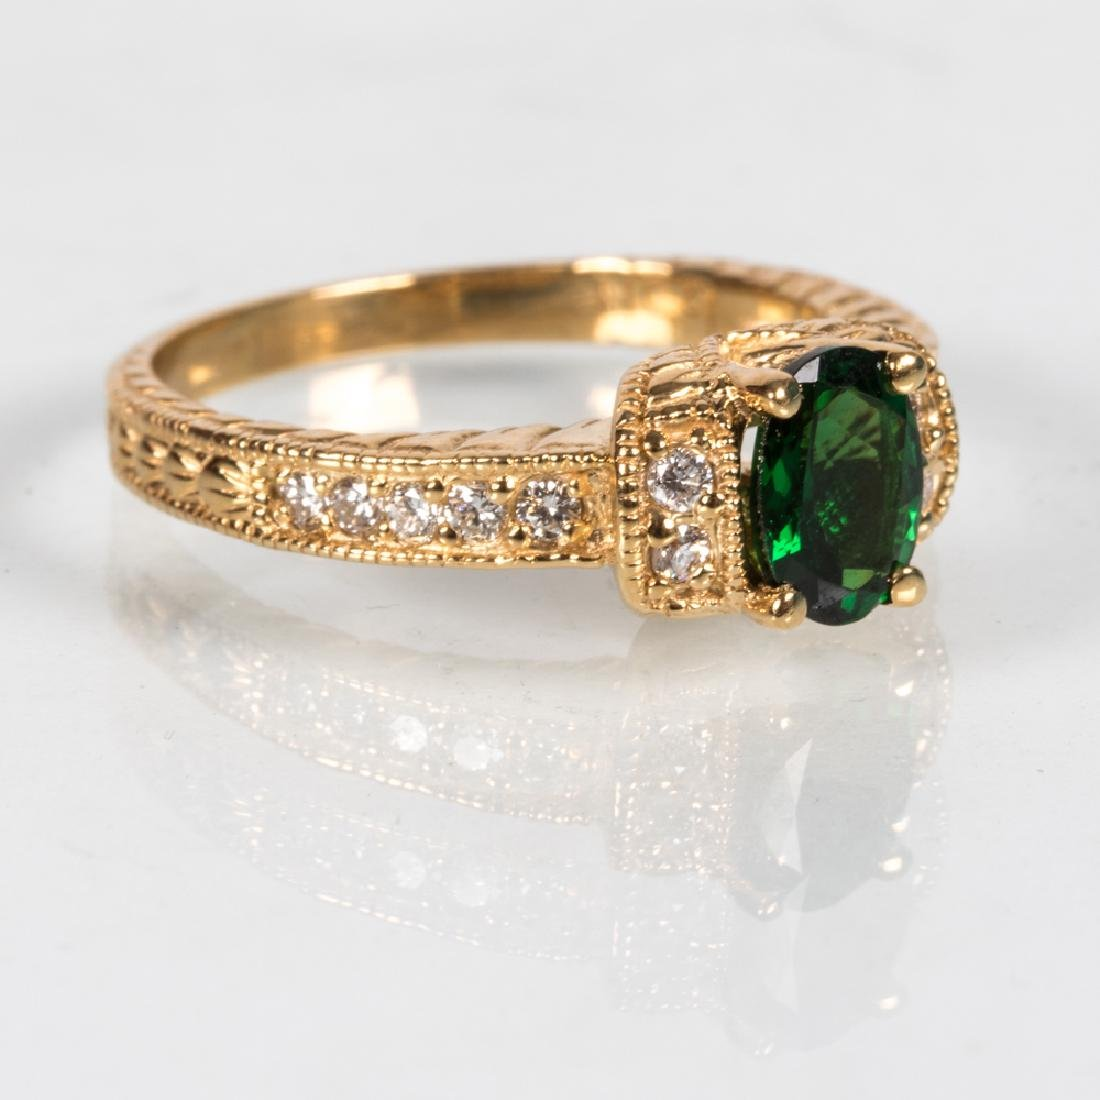 An 18kt. Yellow Gold Tsavorite Garnet and Diamond Ring,